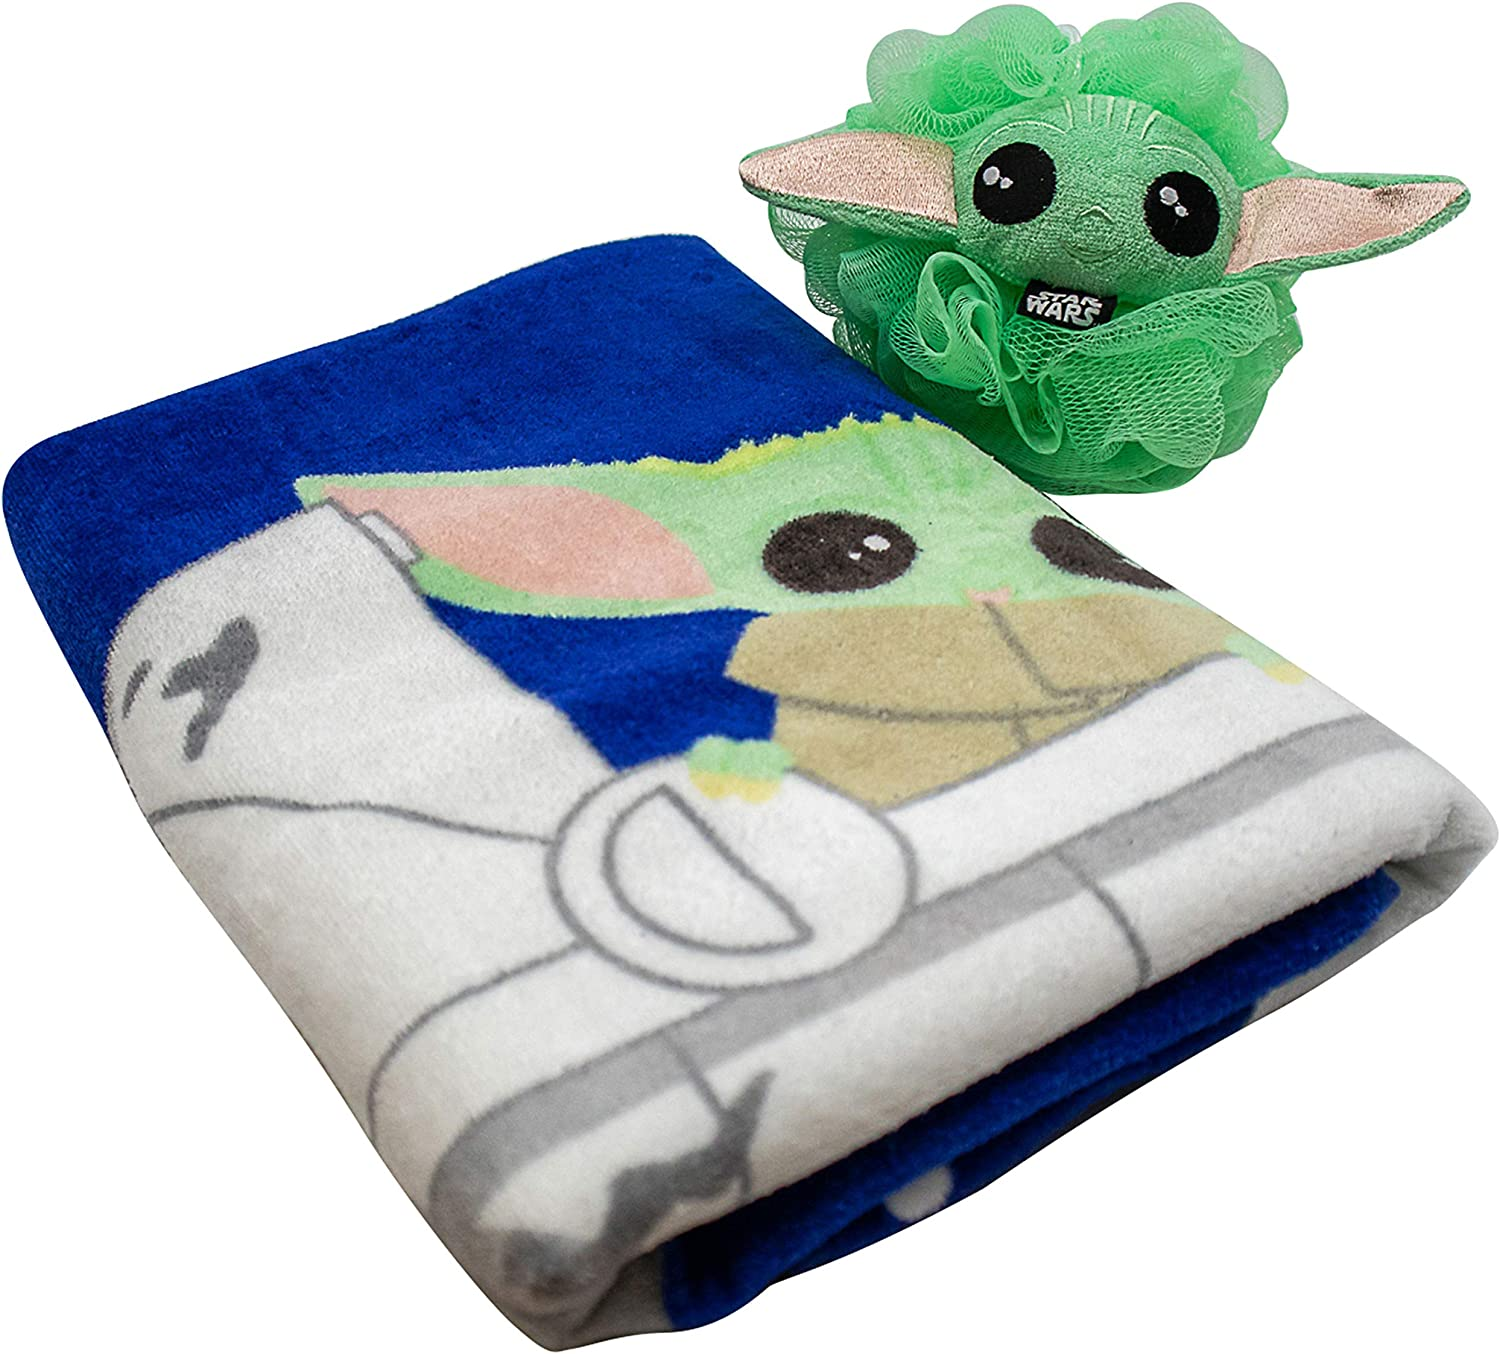 Super Soft /& Absorbent Fade Resistant Cotton Towel Featuring Baby Yoda Official Star Wars Product Jay Franco Star Wars The Mandalorian The Child 2 Piece Bath Towel /& Loofah Set